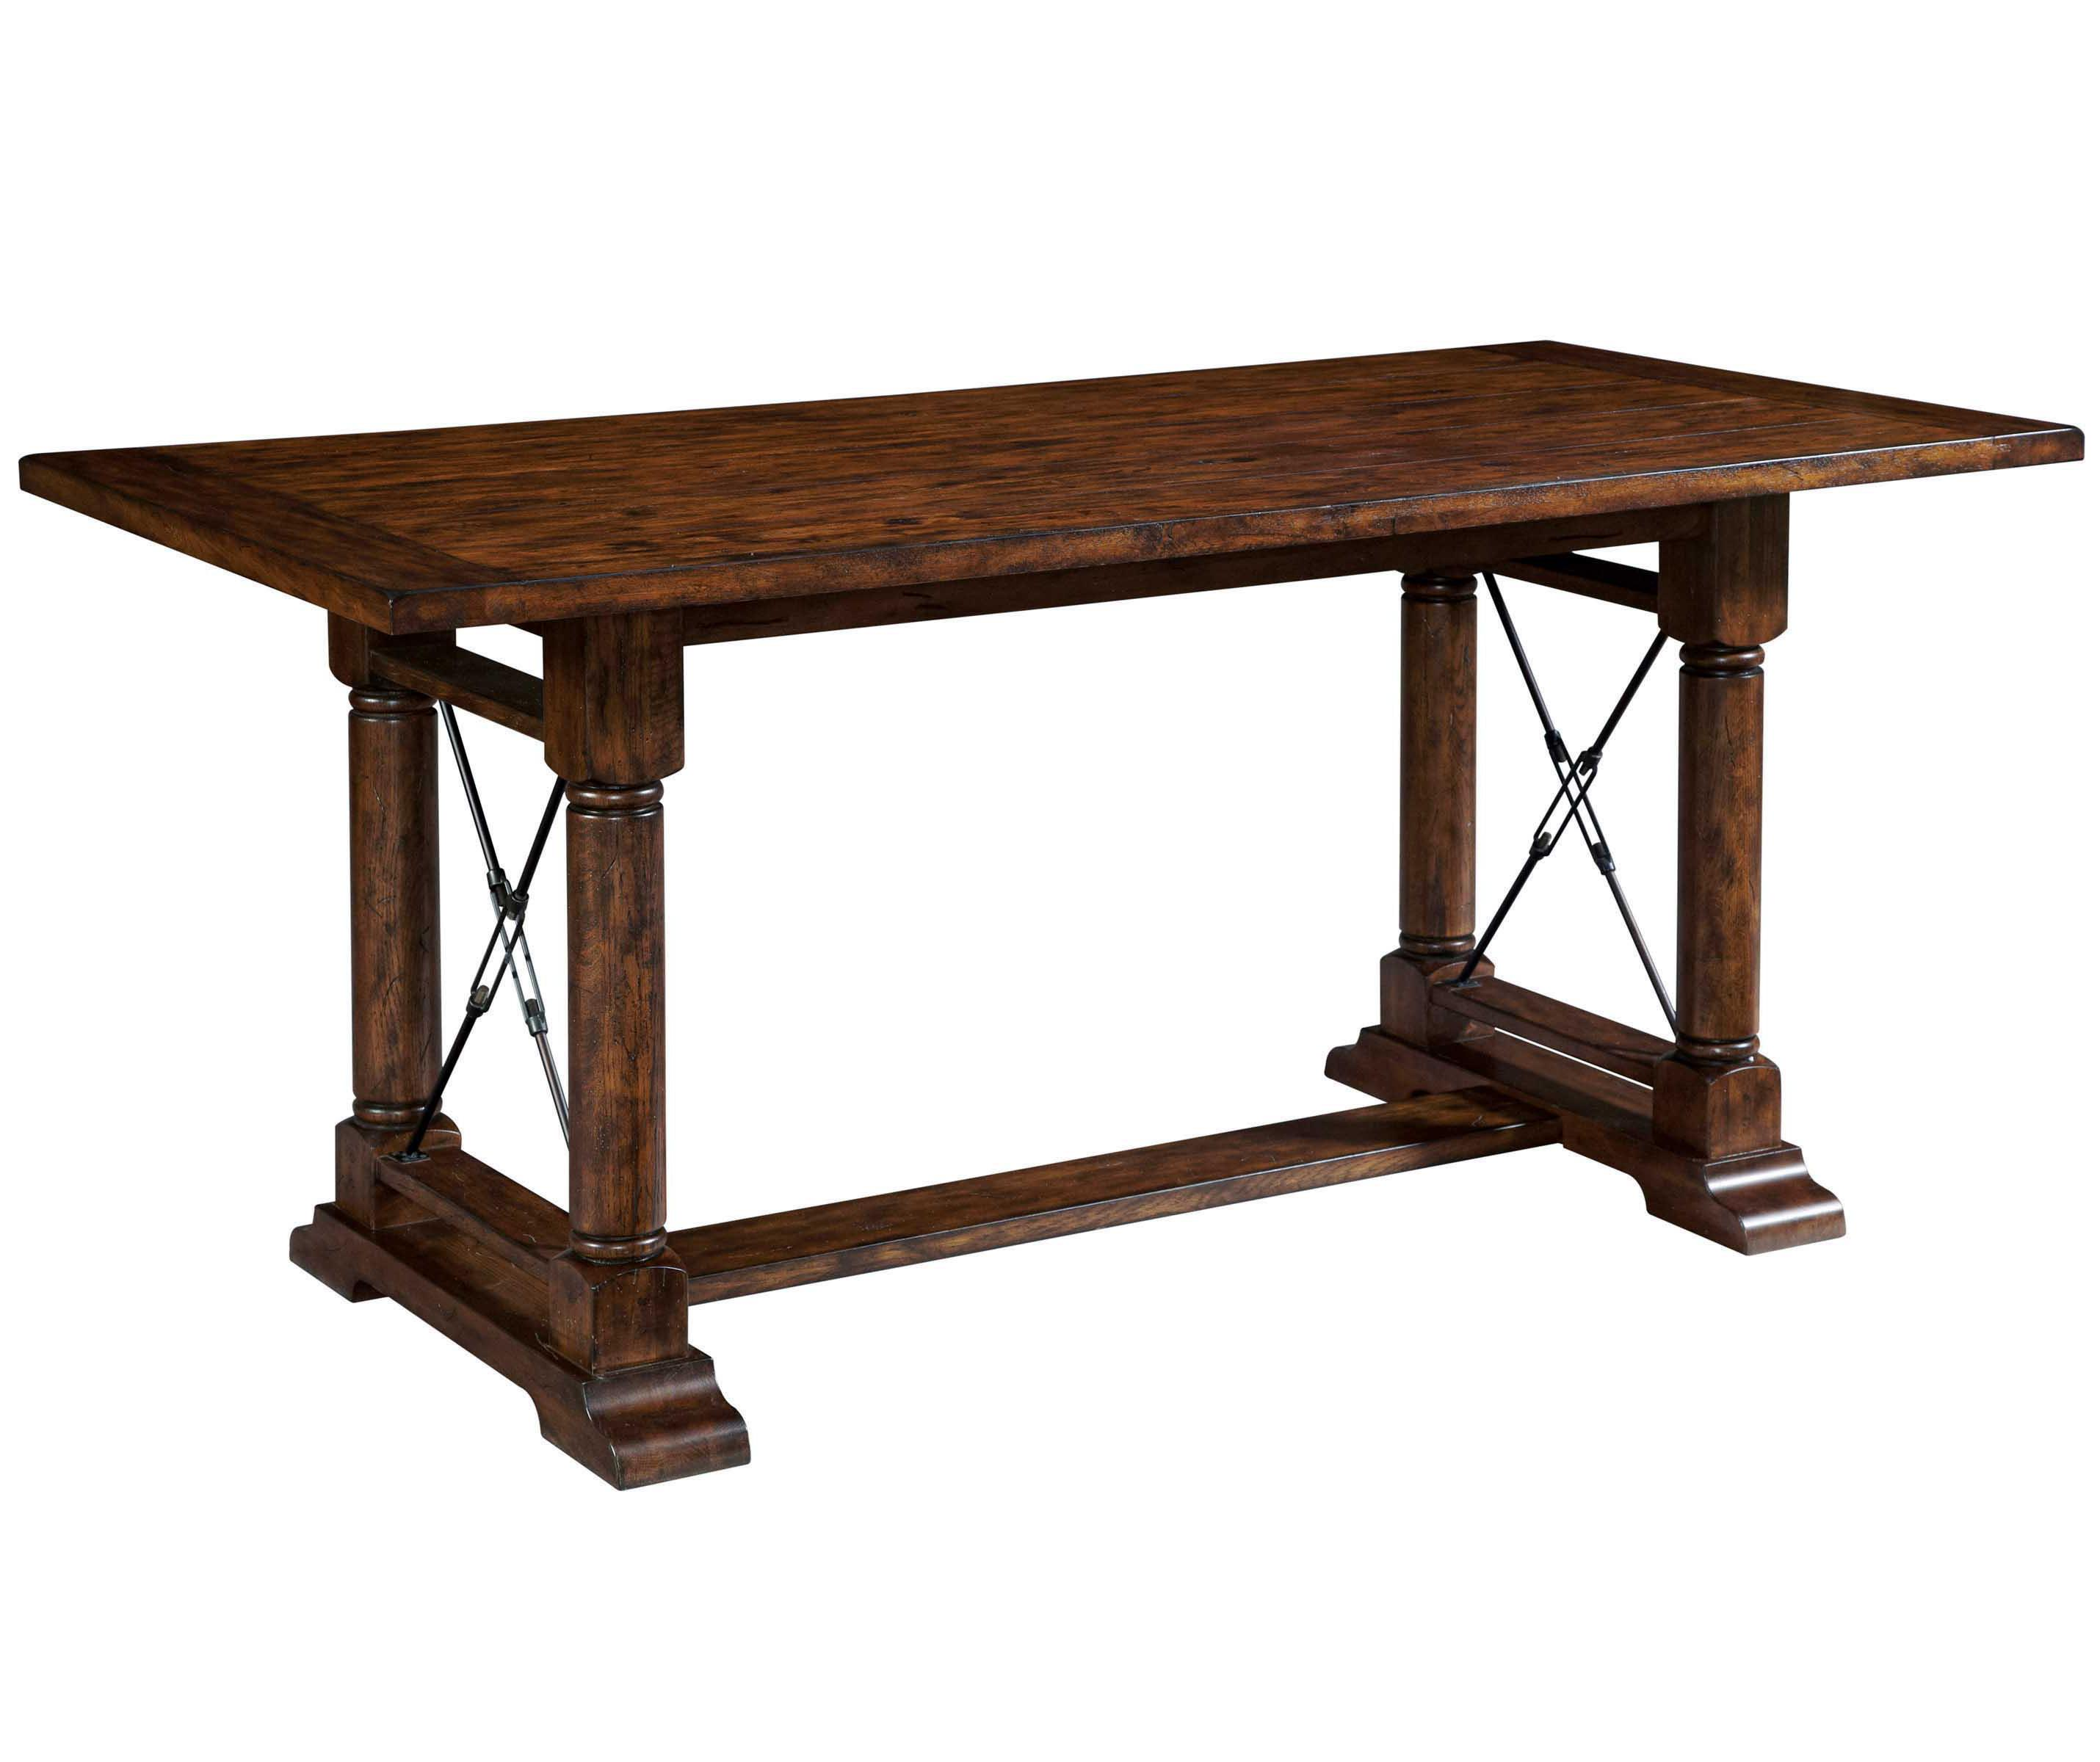 Broyhill Furniture Attic Rustic Counter Height Trestle Table - Item Number: 5399-523